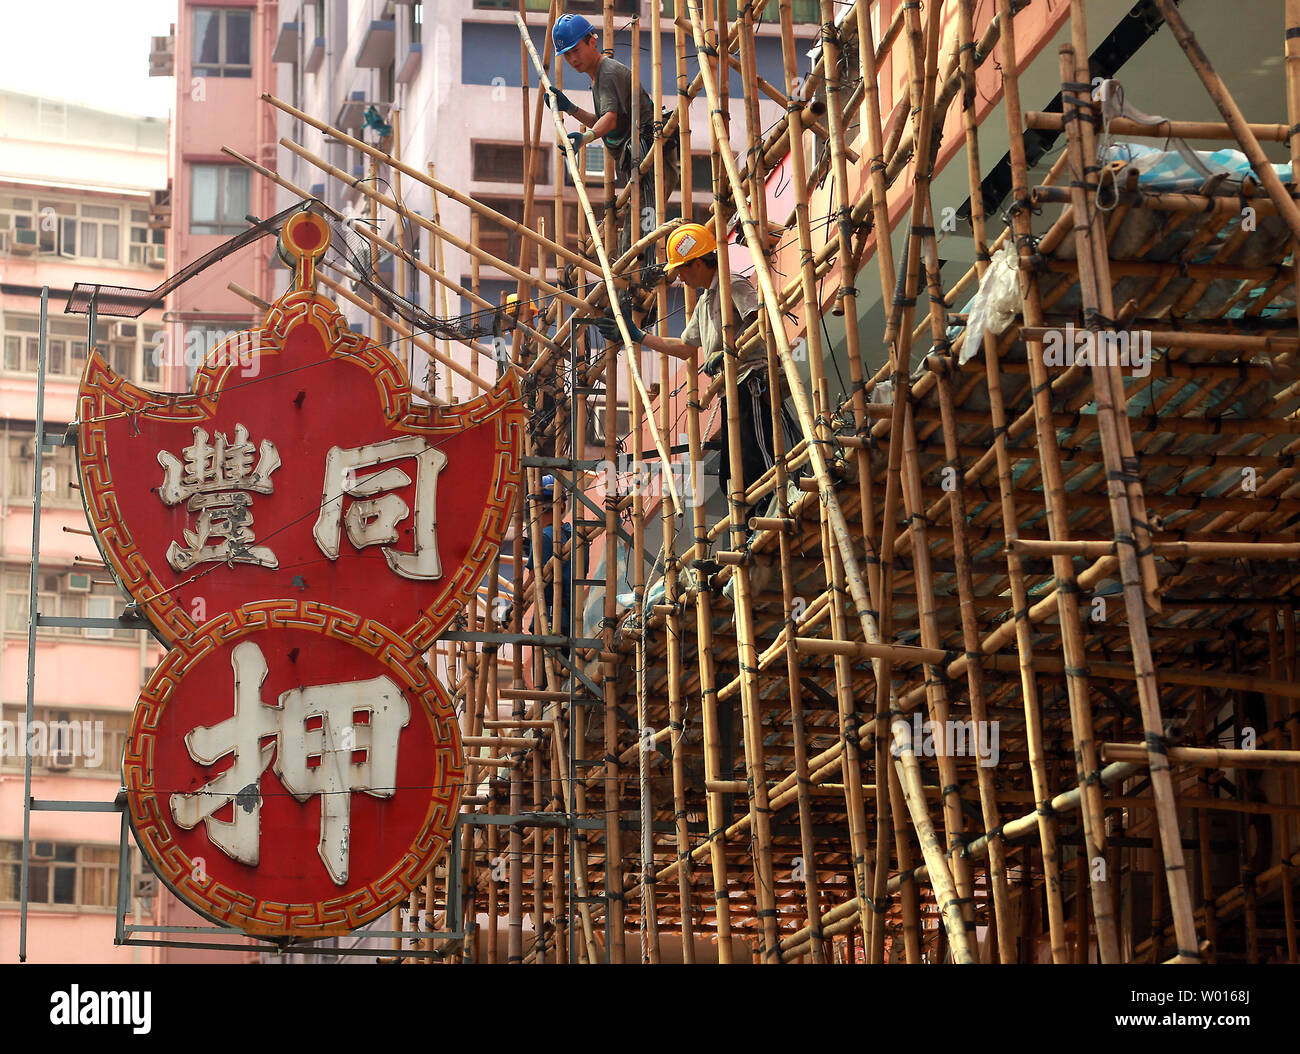 Workers assemble bamboo scaffolding around a housing estate in Hong Kong on October 13, 2014.  Hong Kong offices and homes are the world's least affordable, costing almost 15 times household incomes in 2013, according to the Demographia International Housing Affordability survey.      UPI/Stephen Shaver - Stock Image